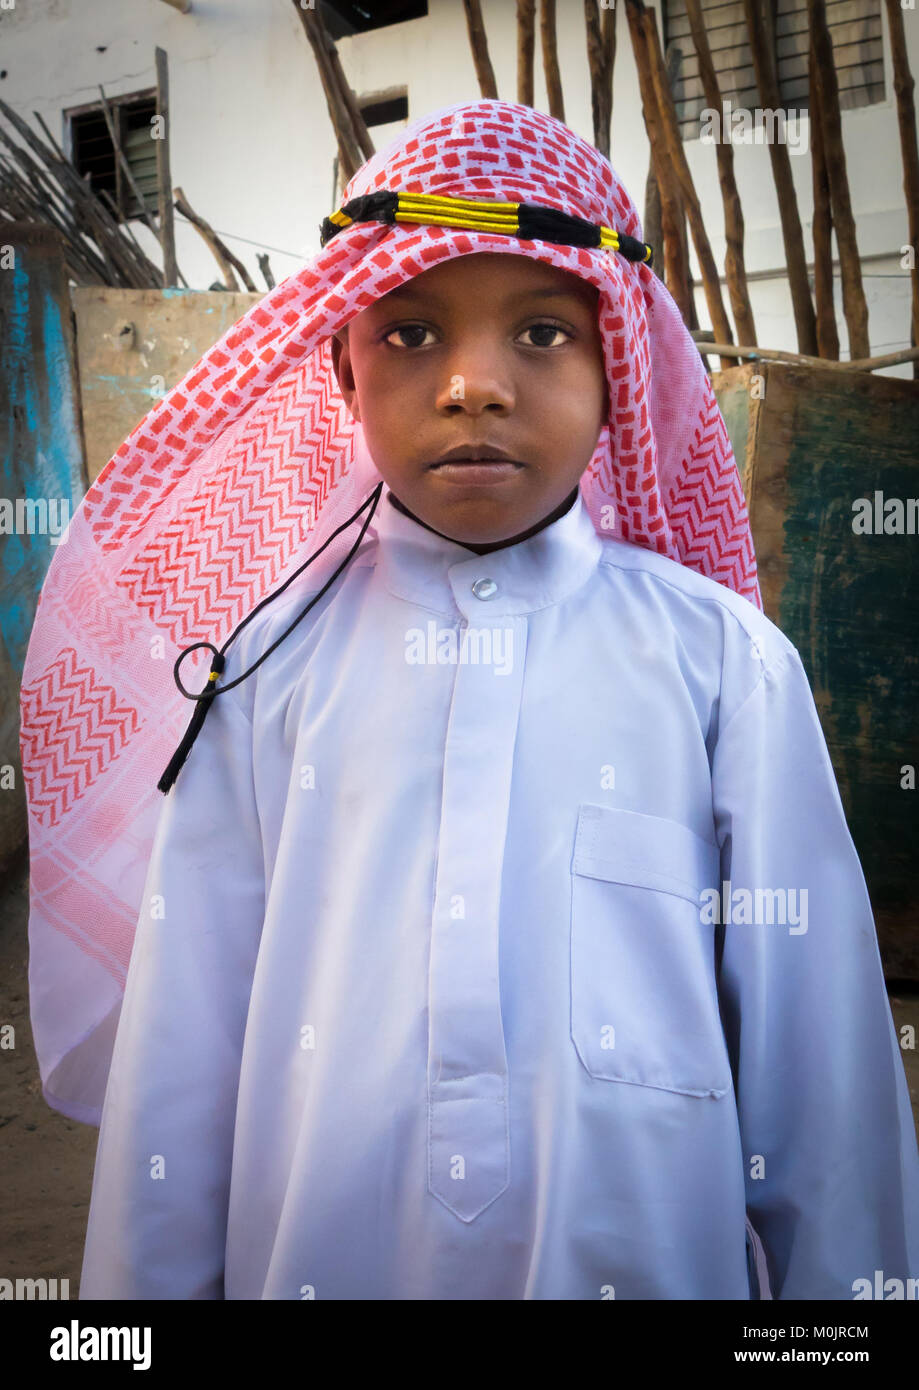 Kid wearing traditional suit for the Mawlid festival, Lamu Island, Kenya - Stock Image